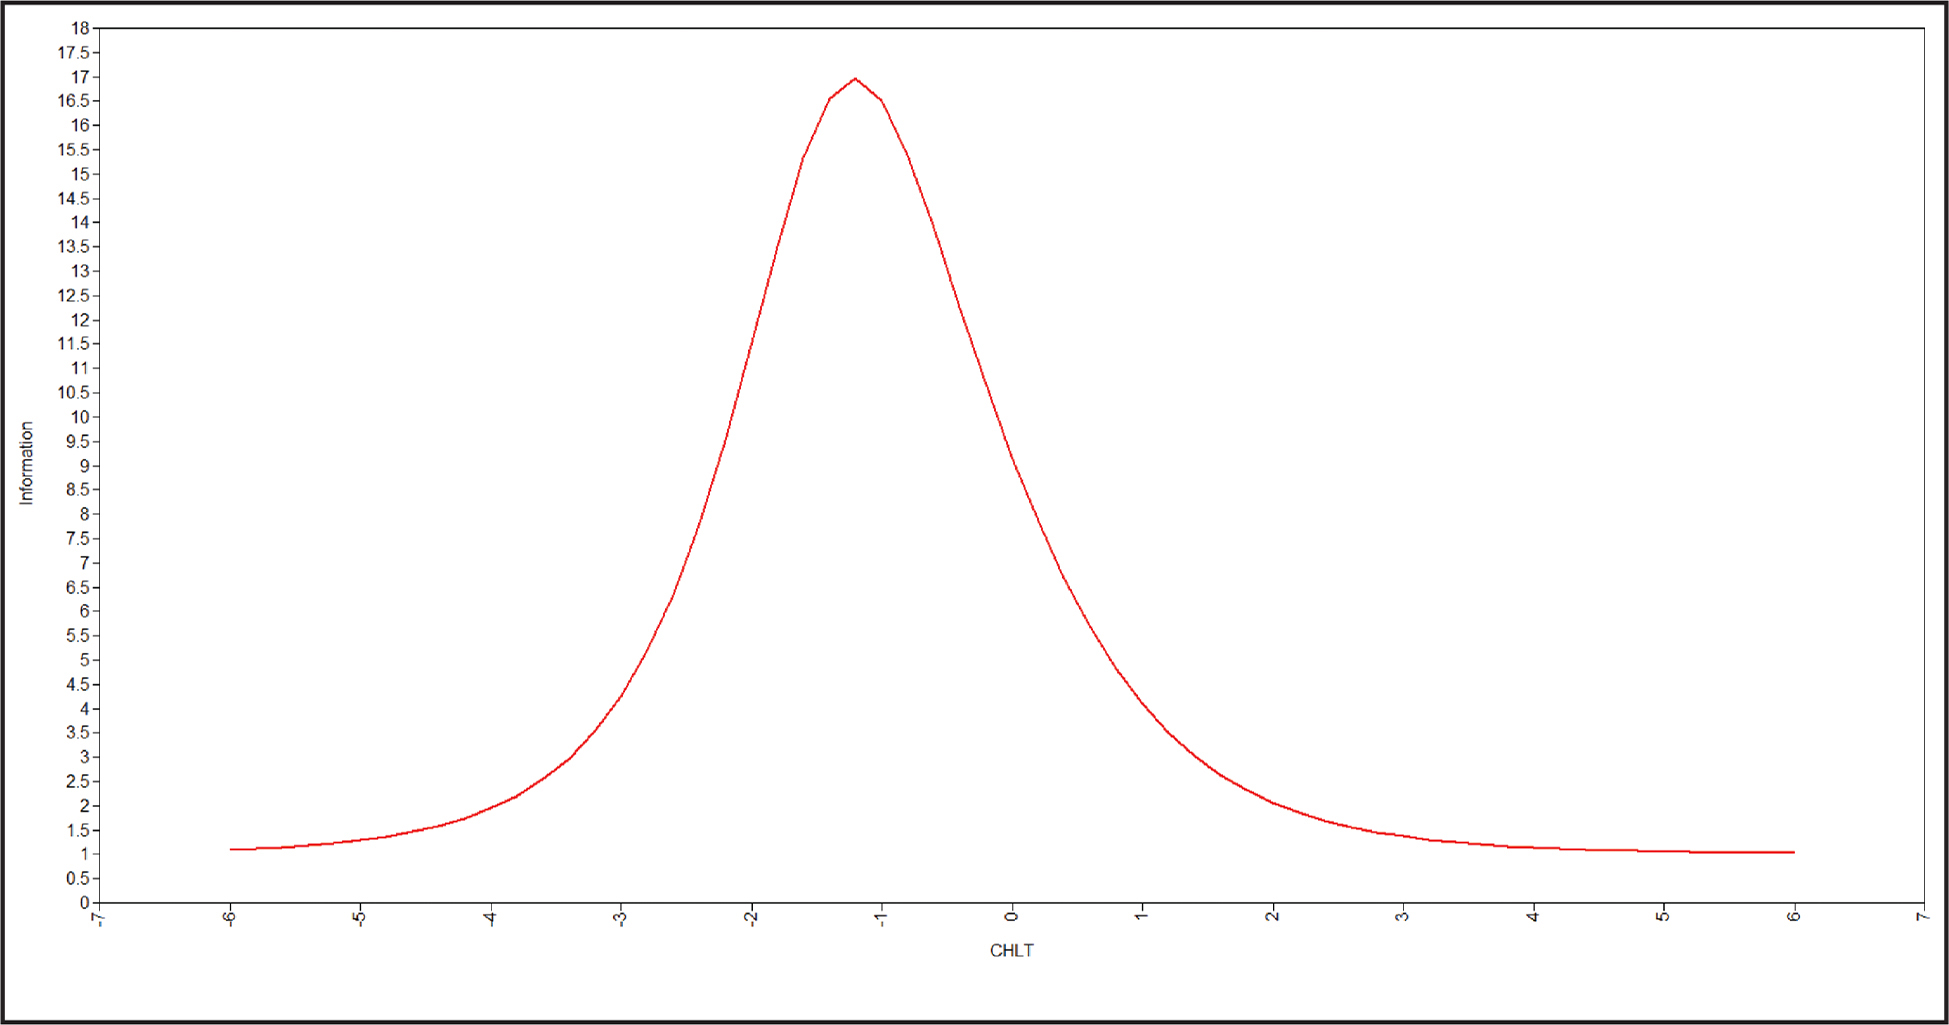 Test information curve from the two-parameter logistic model. CHLT = Cancer Health Literacy Test.